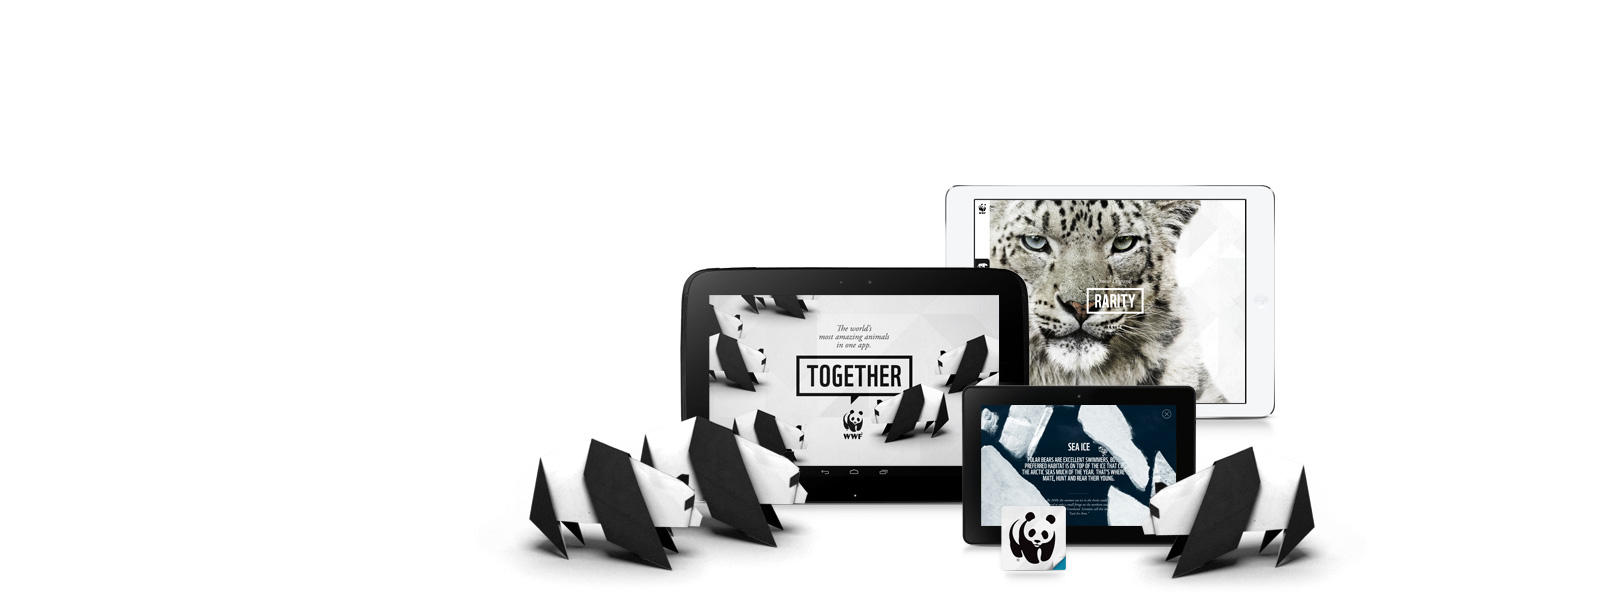 WWFTogether_Android_Landing page_7/7/14